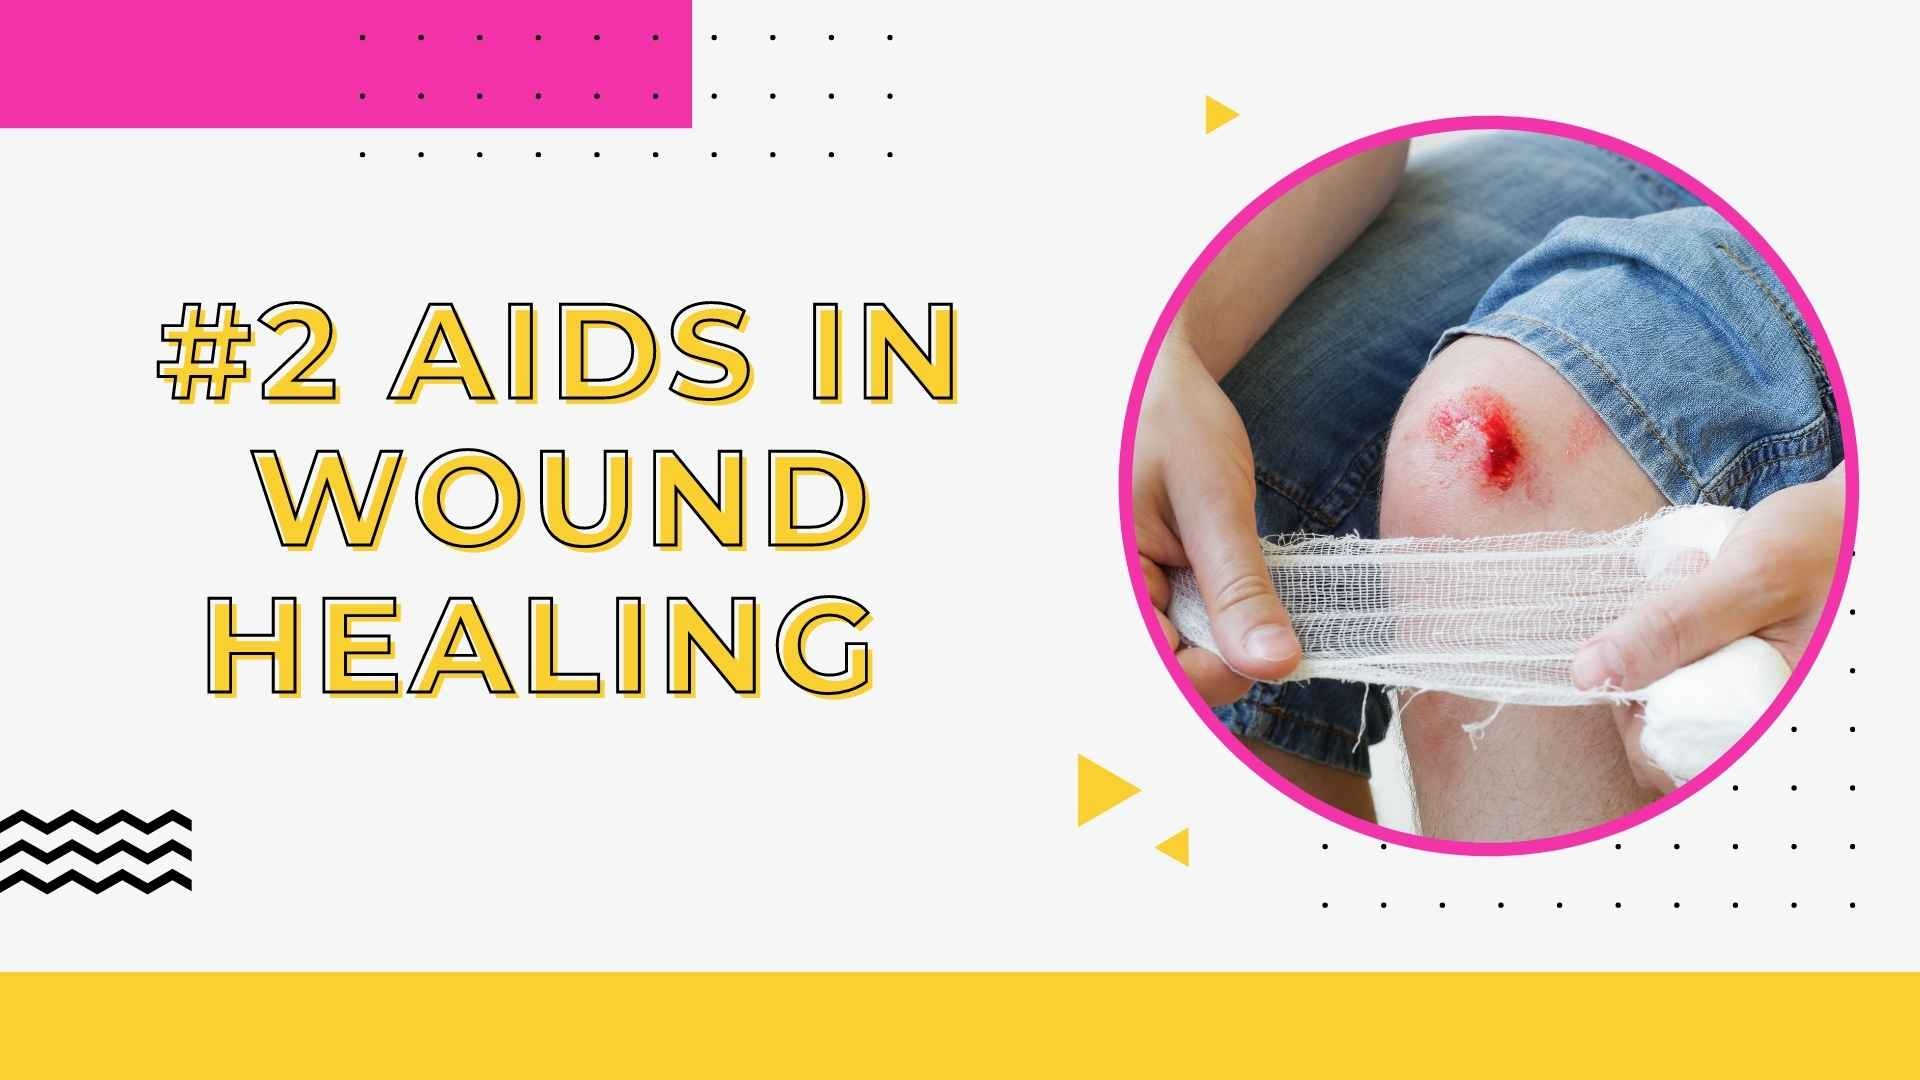 #2 Aids In Wound Healing